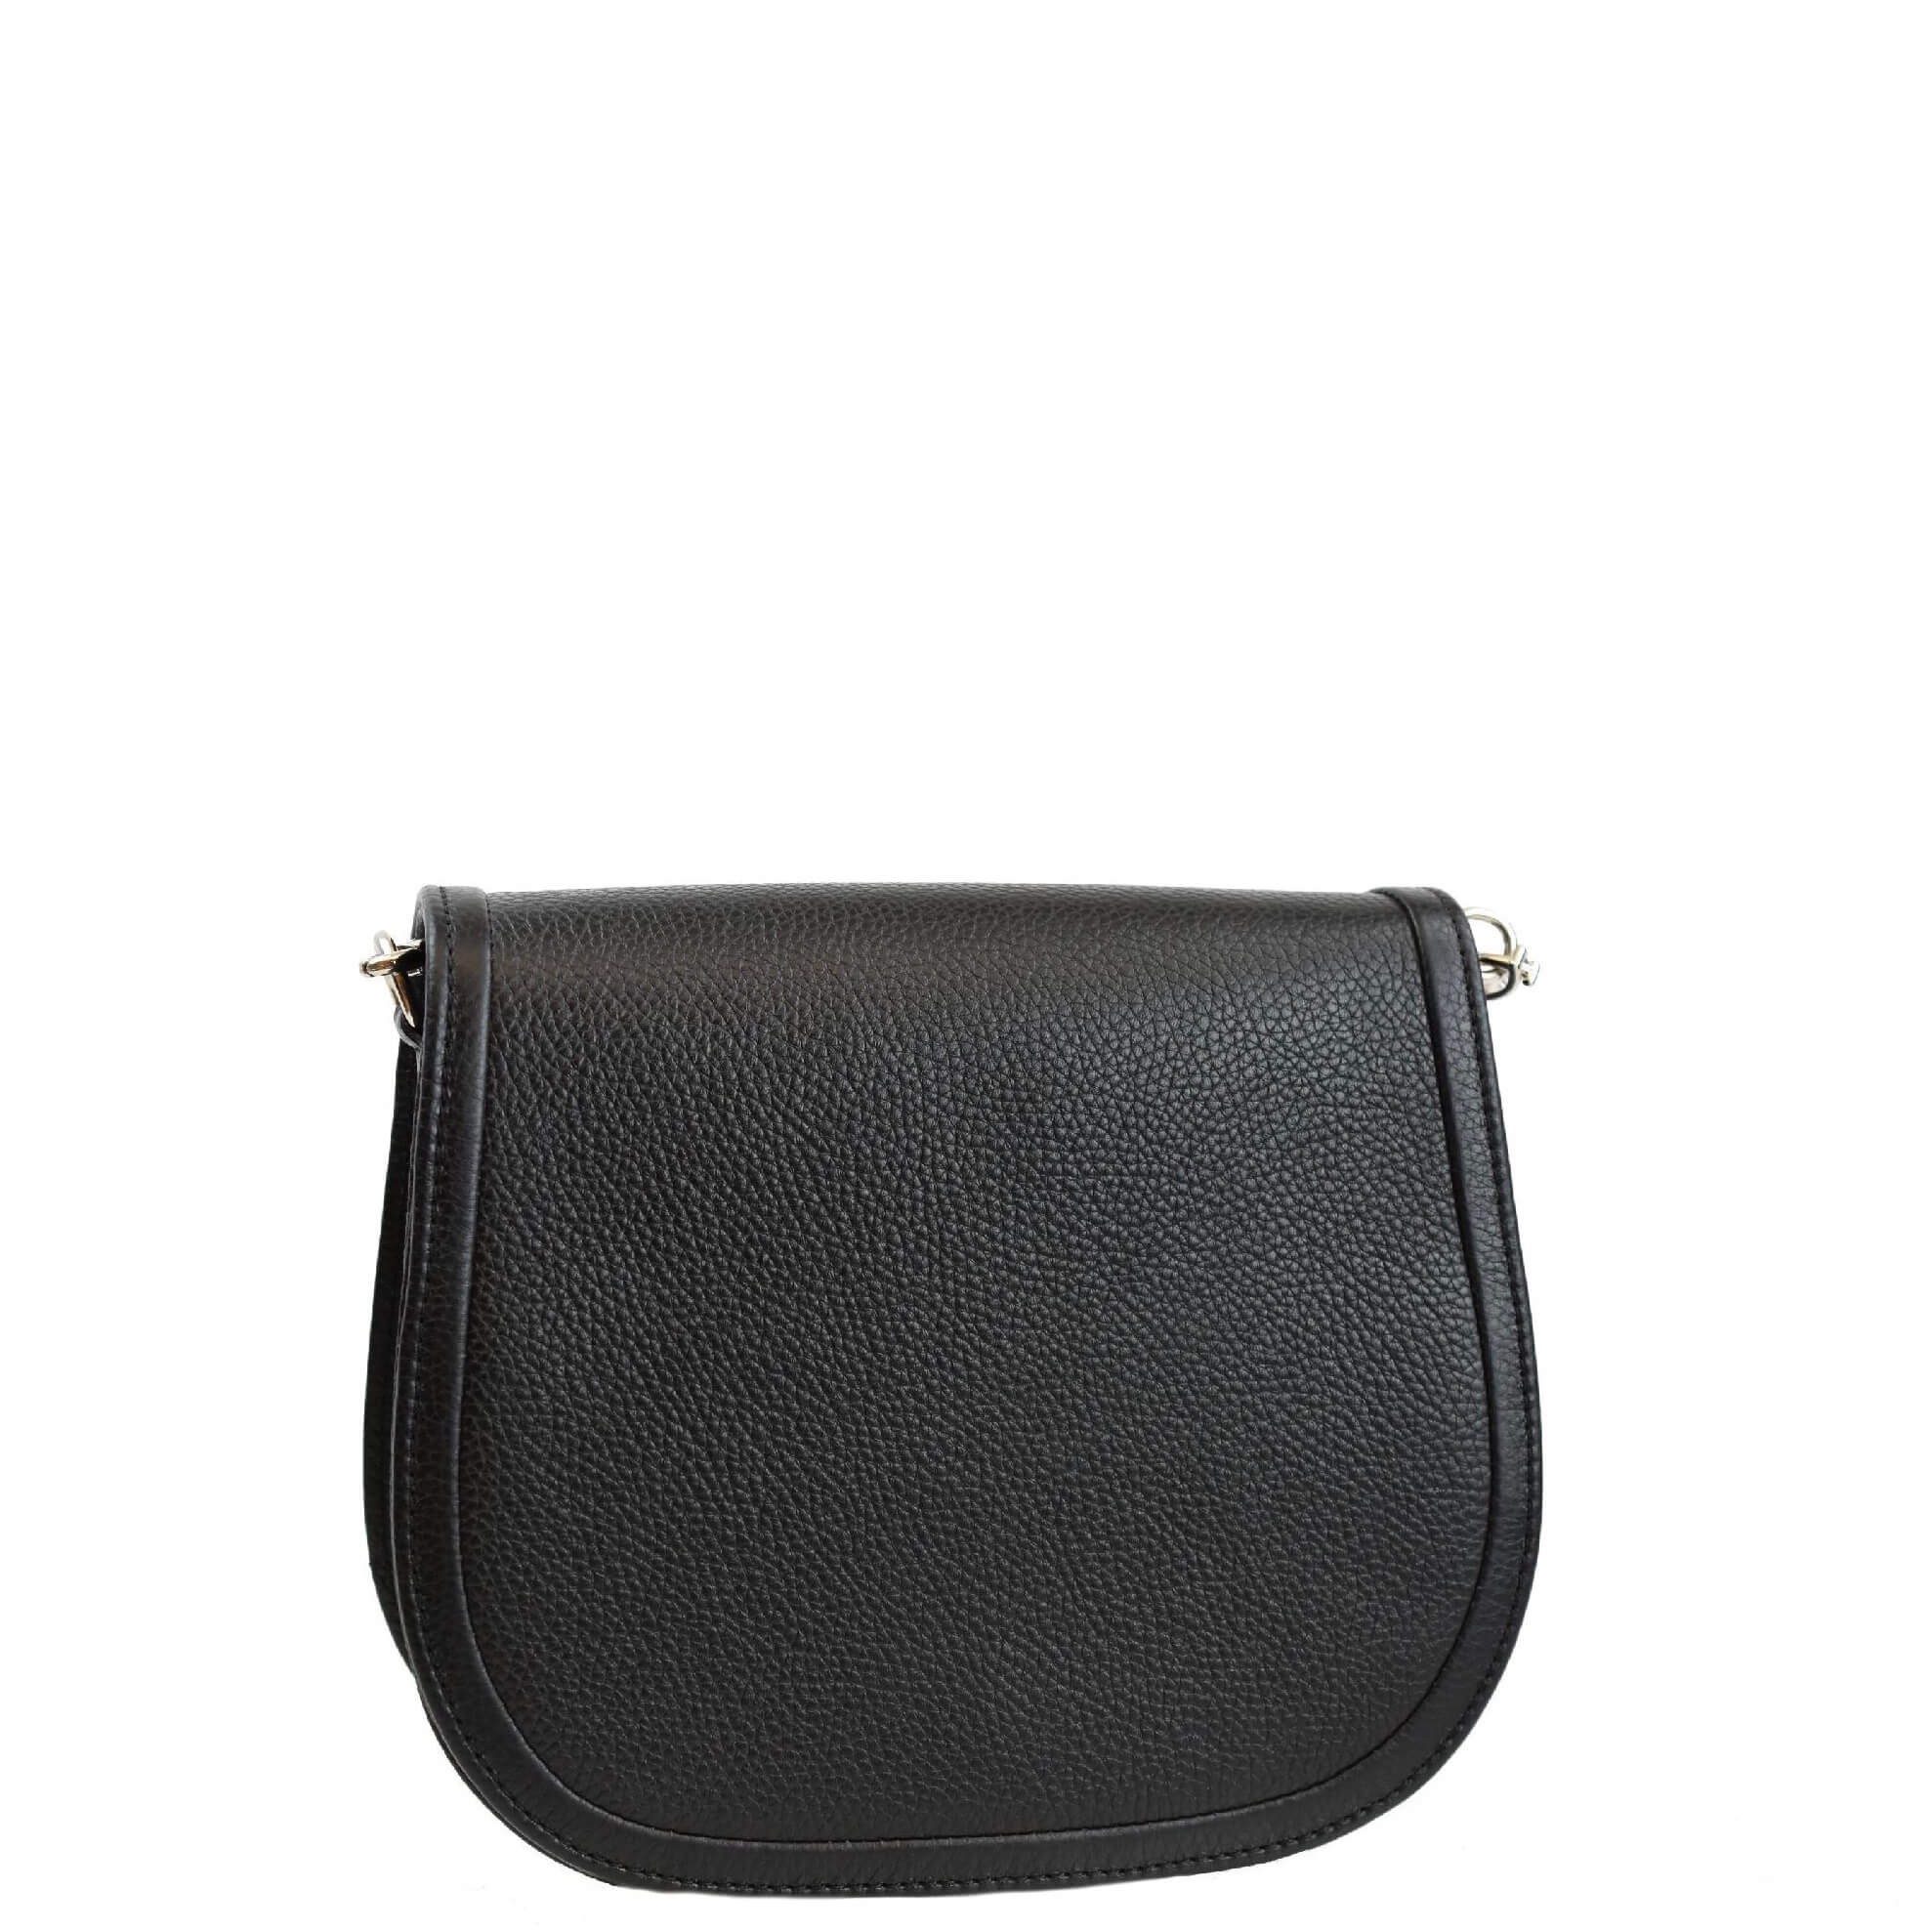 Black Crossbody. Damas